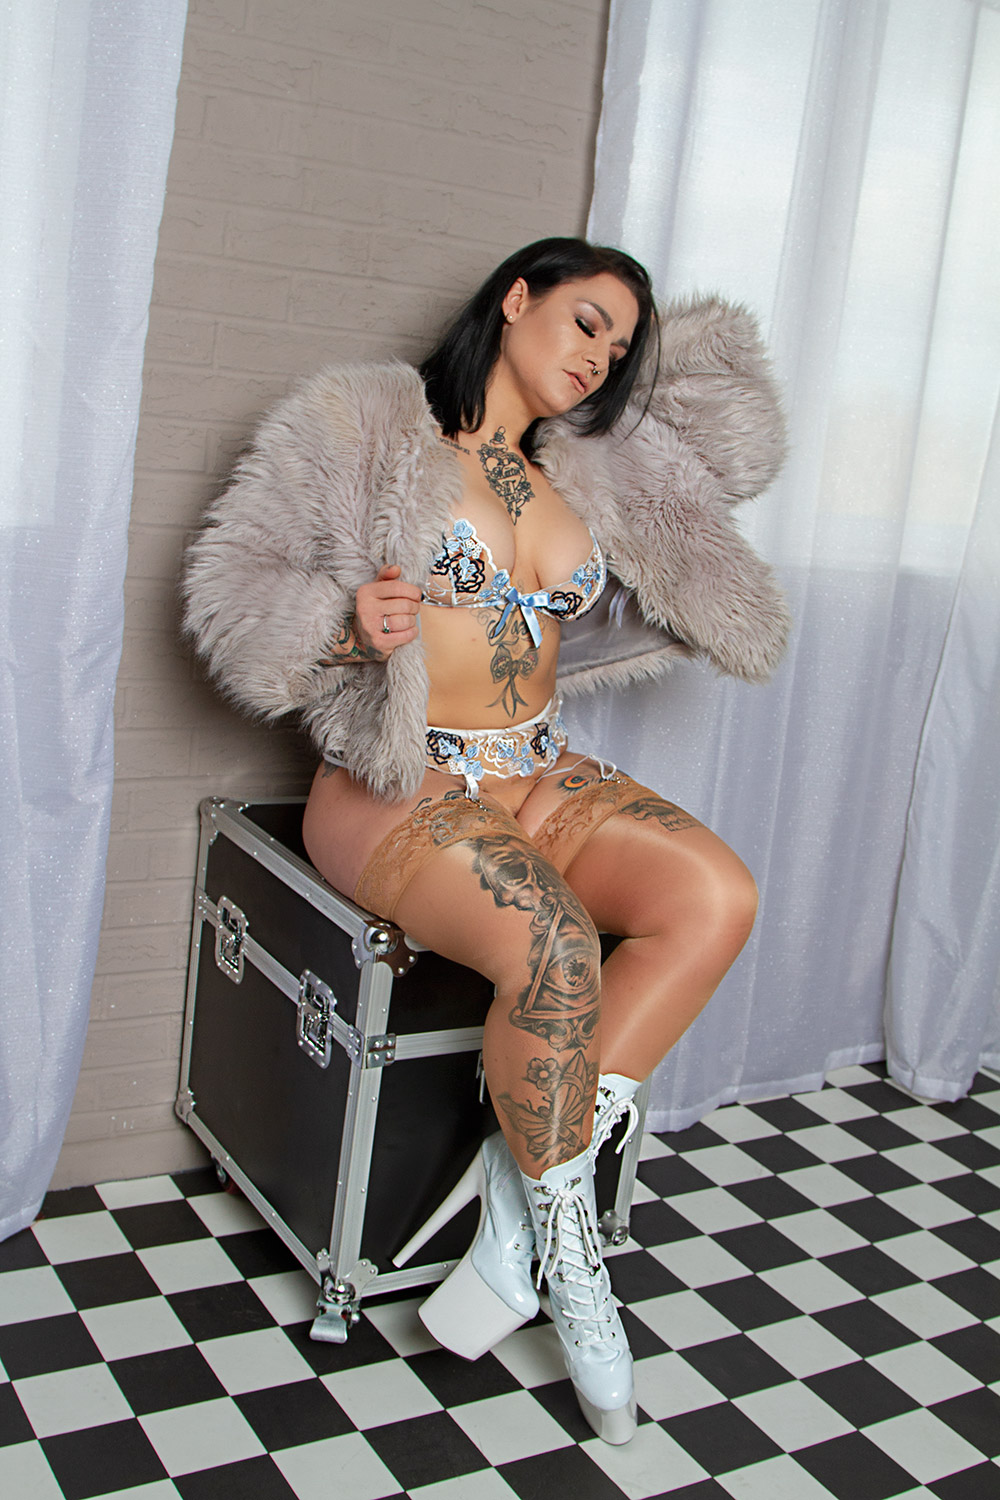 kitty-inkk-tattooed-alt-model-fat-punk-studio-03